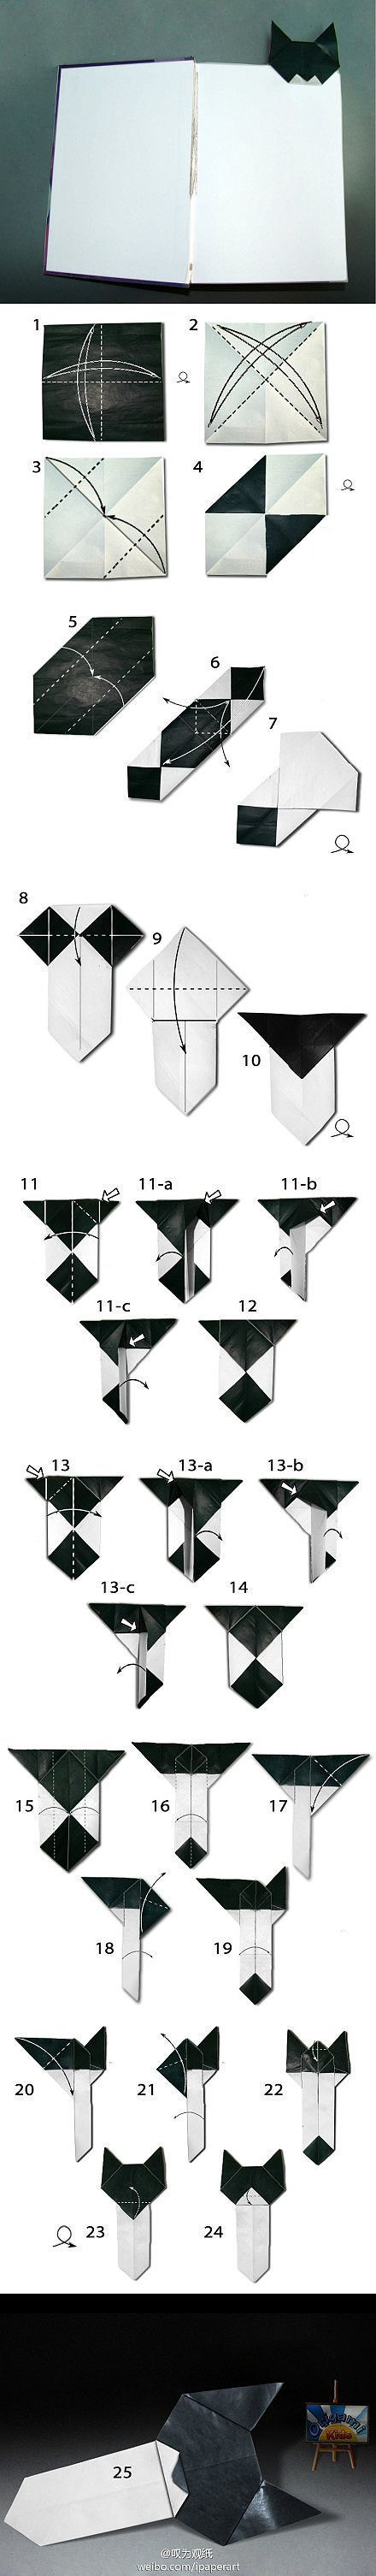 1000 ideas about origami cat on pinterest origami